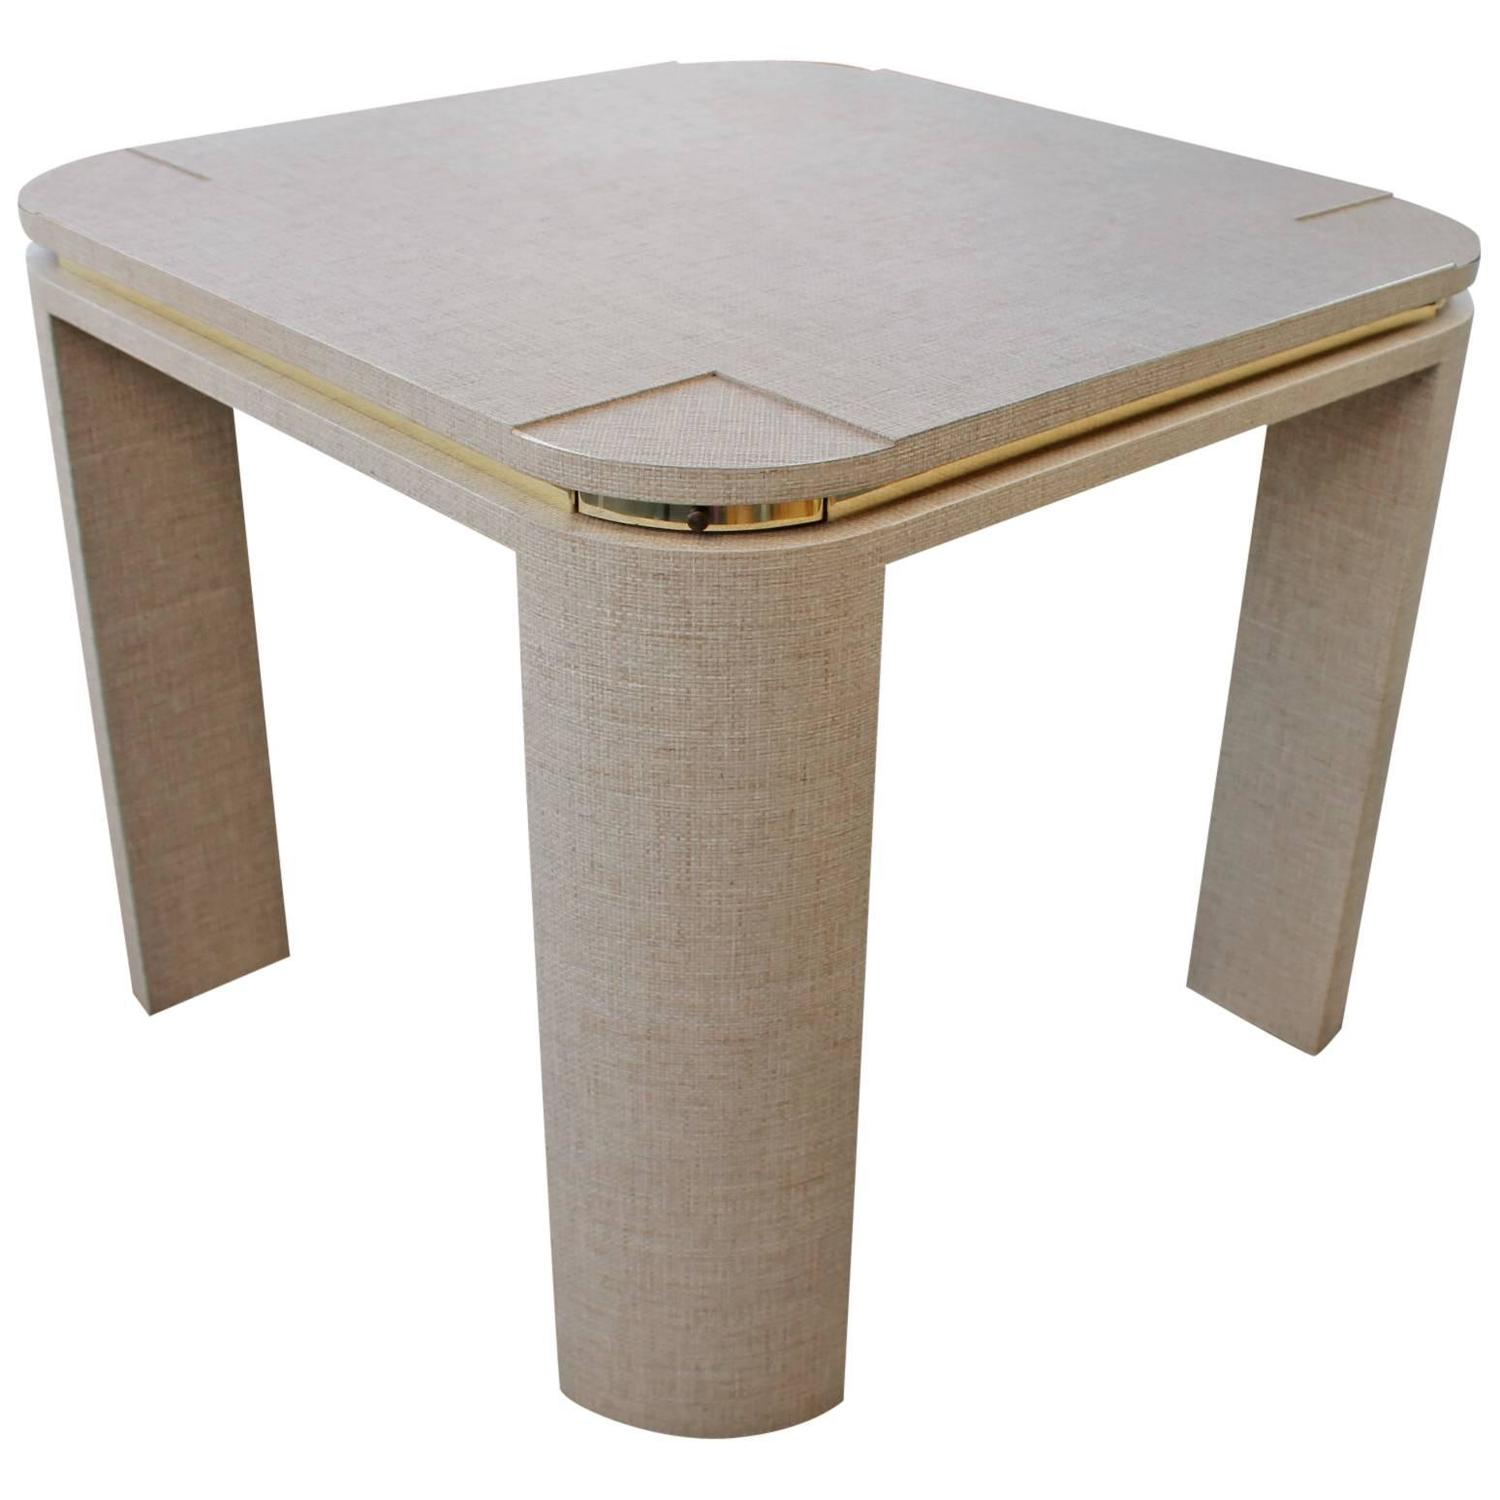 Grasscloth Coffee Table Grasscloth Furniture 91 For Sale At 1stdibs